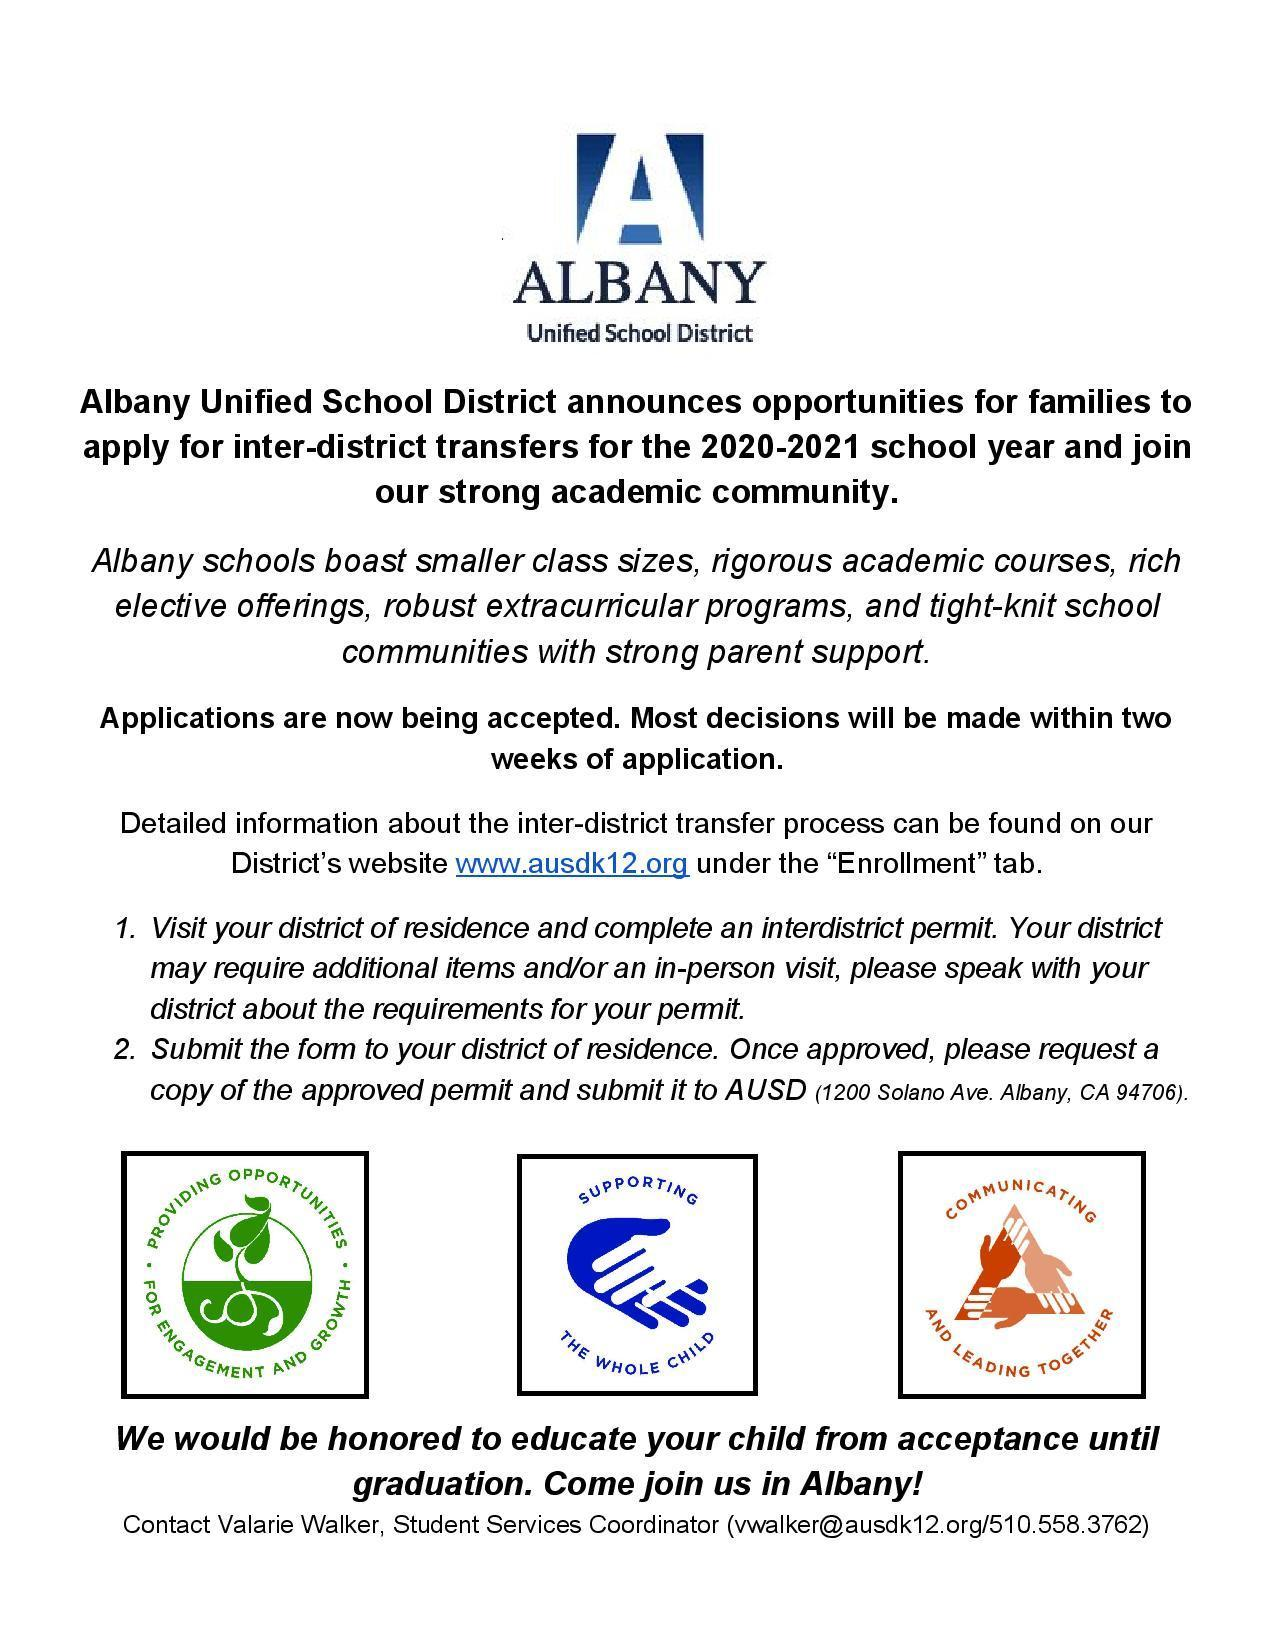 AUSD announces opportunities for families to apply for inter-district transfers